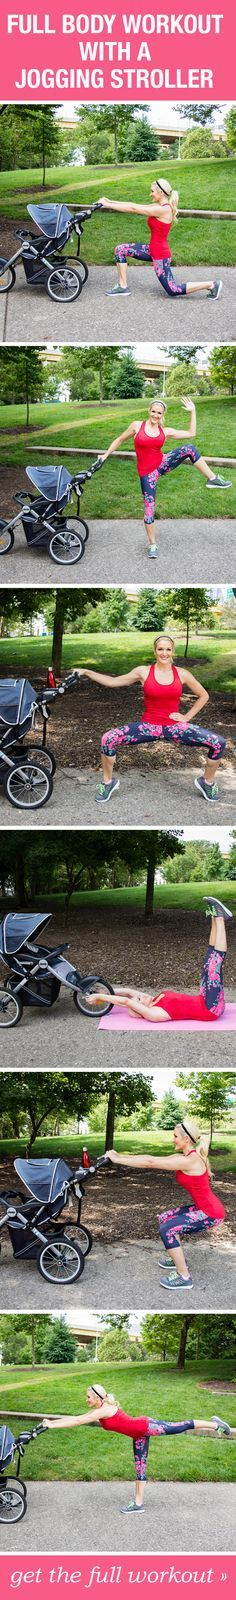 Grab your stroller and try this full body fitness workout!